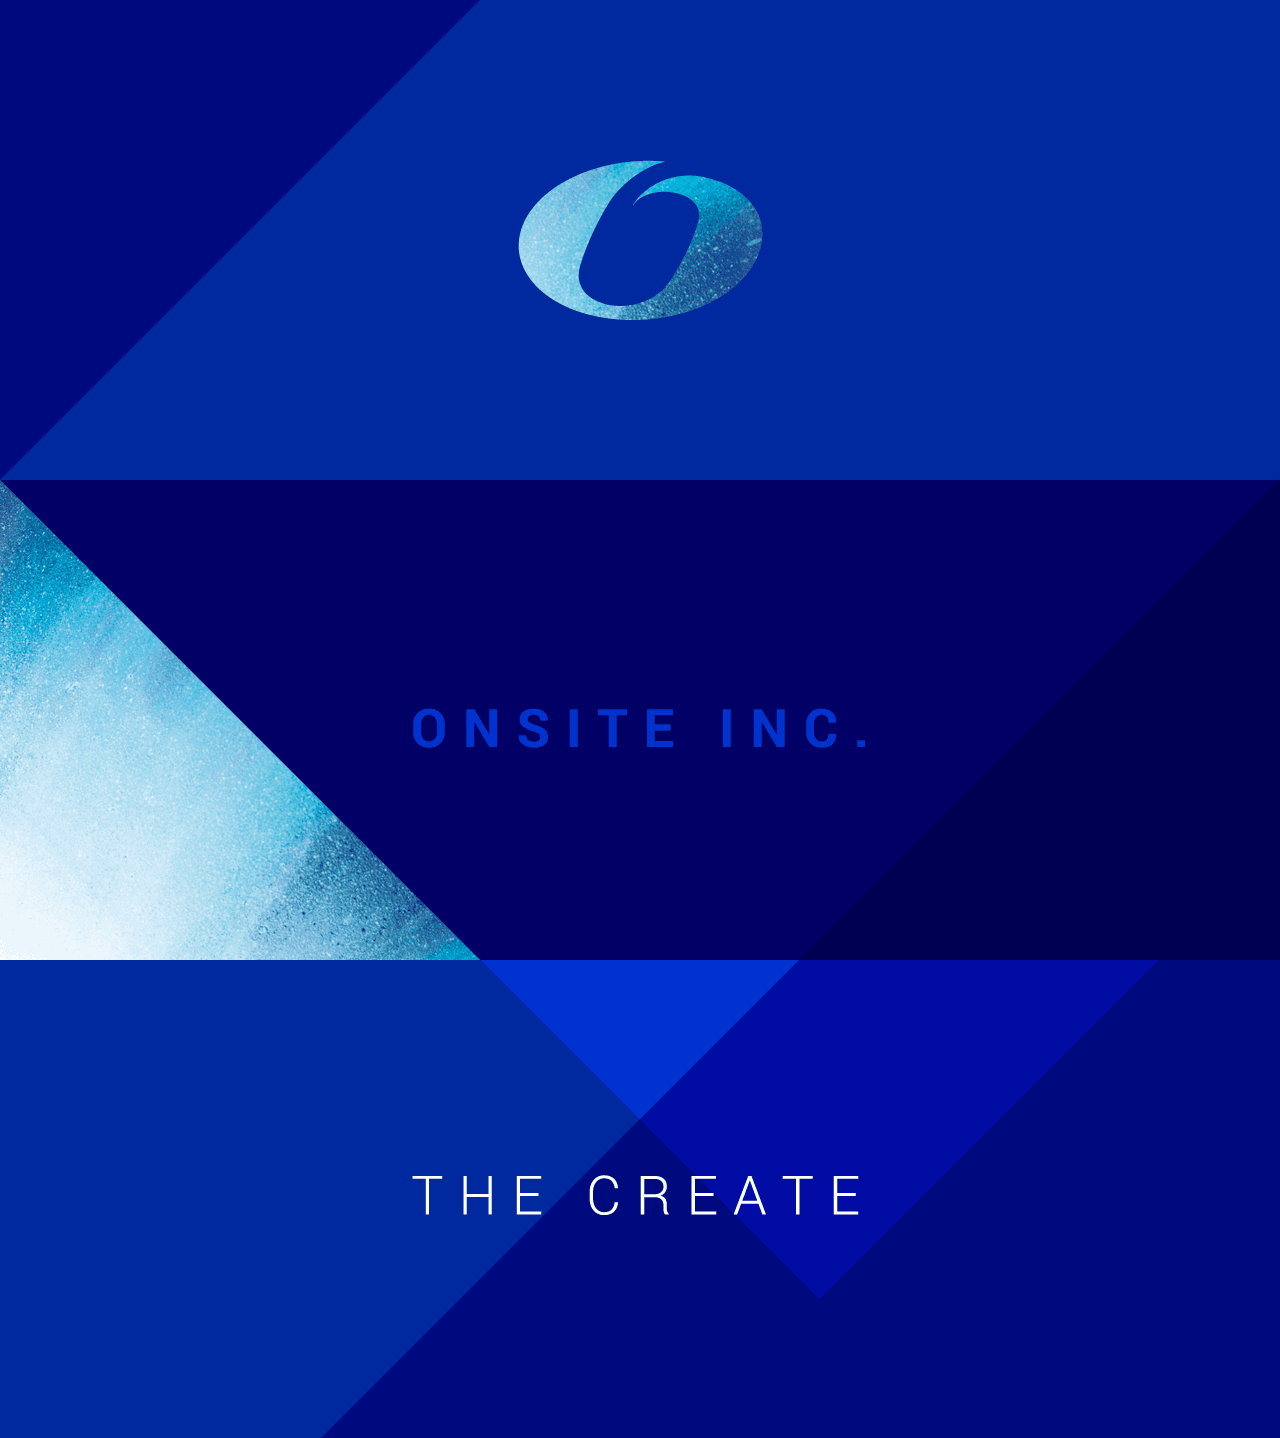 ONSITE INC. THE CREATE